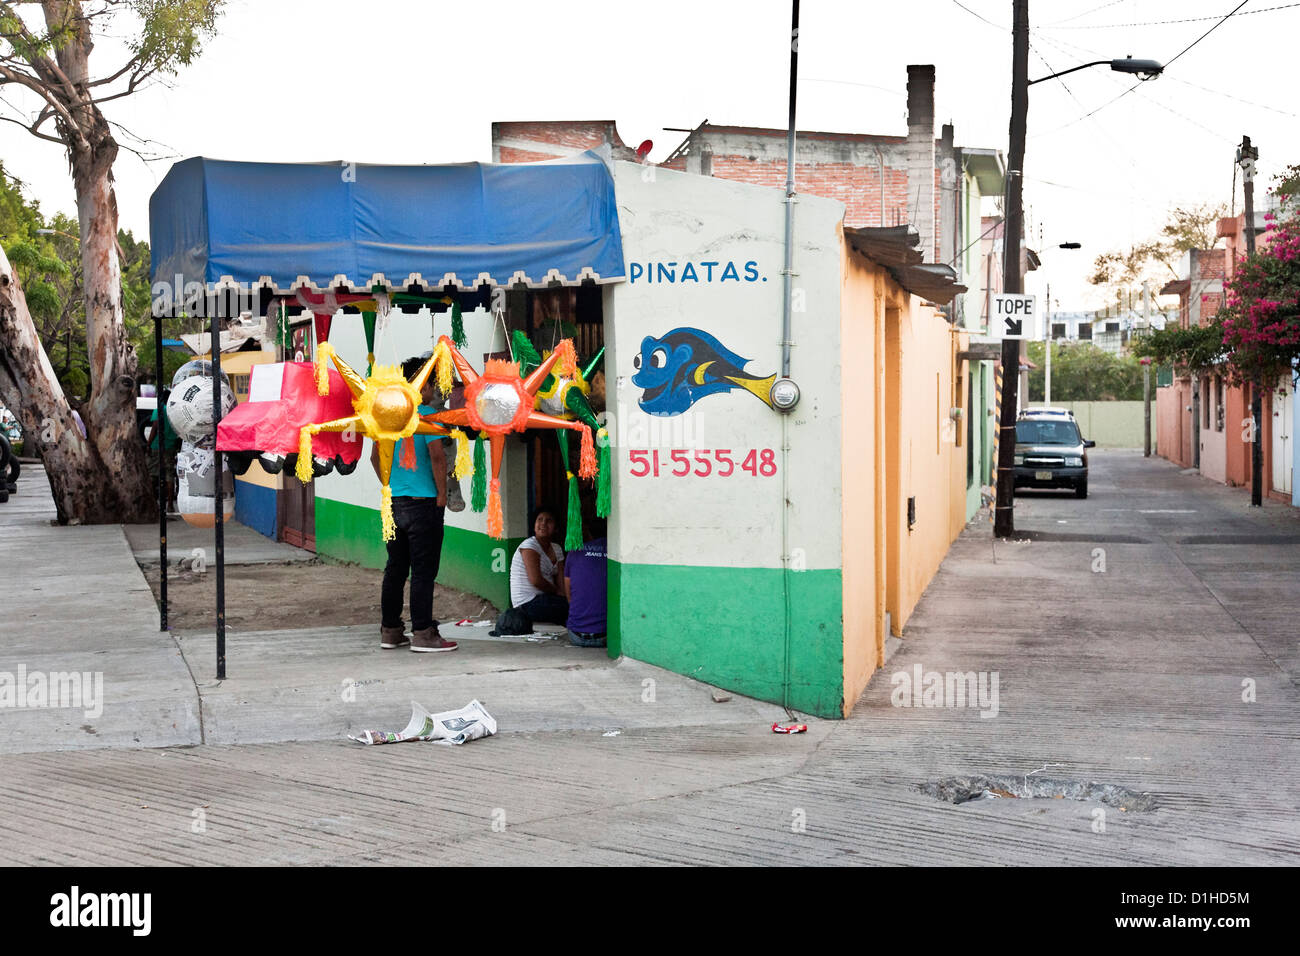 mexican pinatas stock photos u0026 mexican pinatas stock images alamy